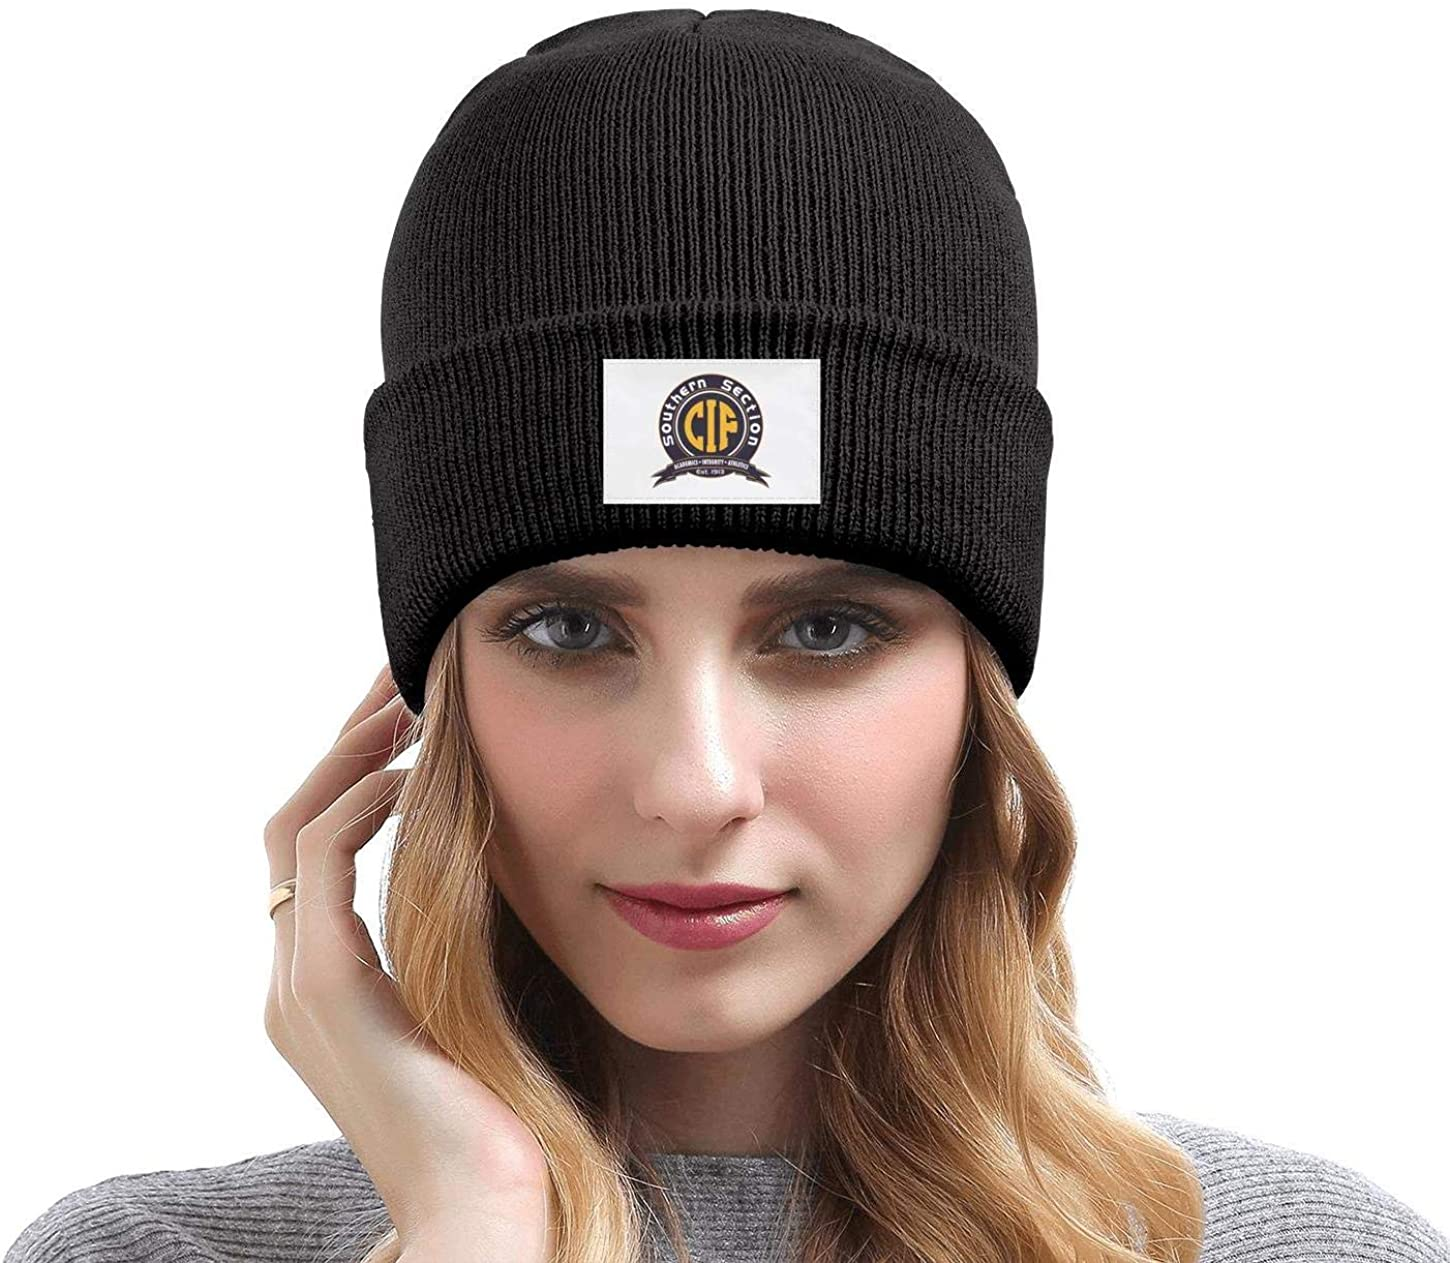 Ingemarfcgfg CIF-Southern-Section Adult Winter Outdoor Knit Hat Keep Warm Daily Cool